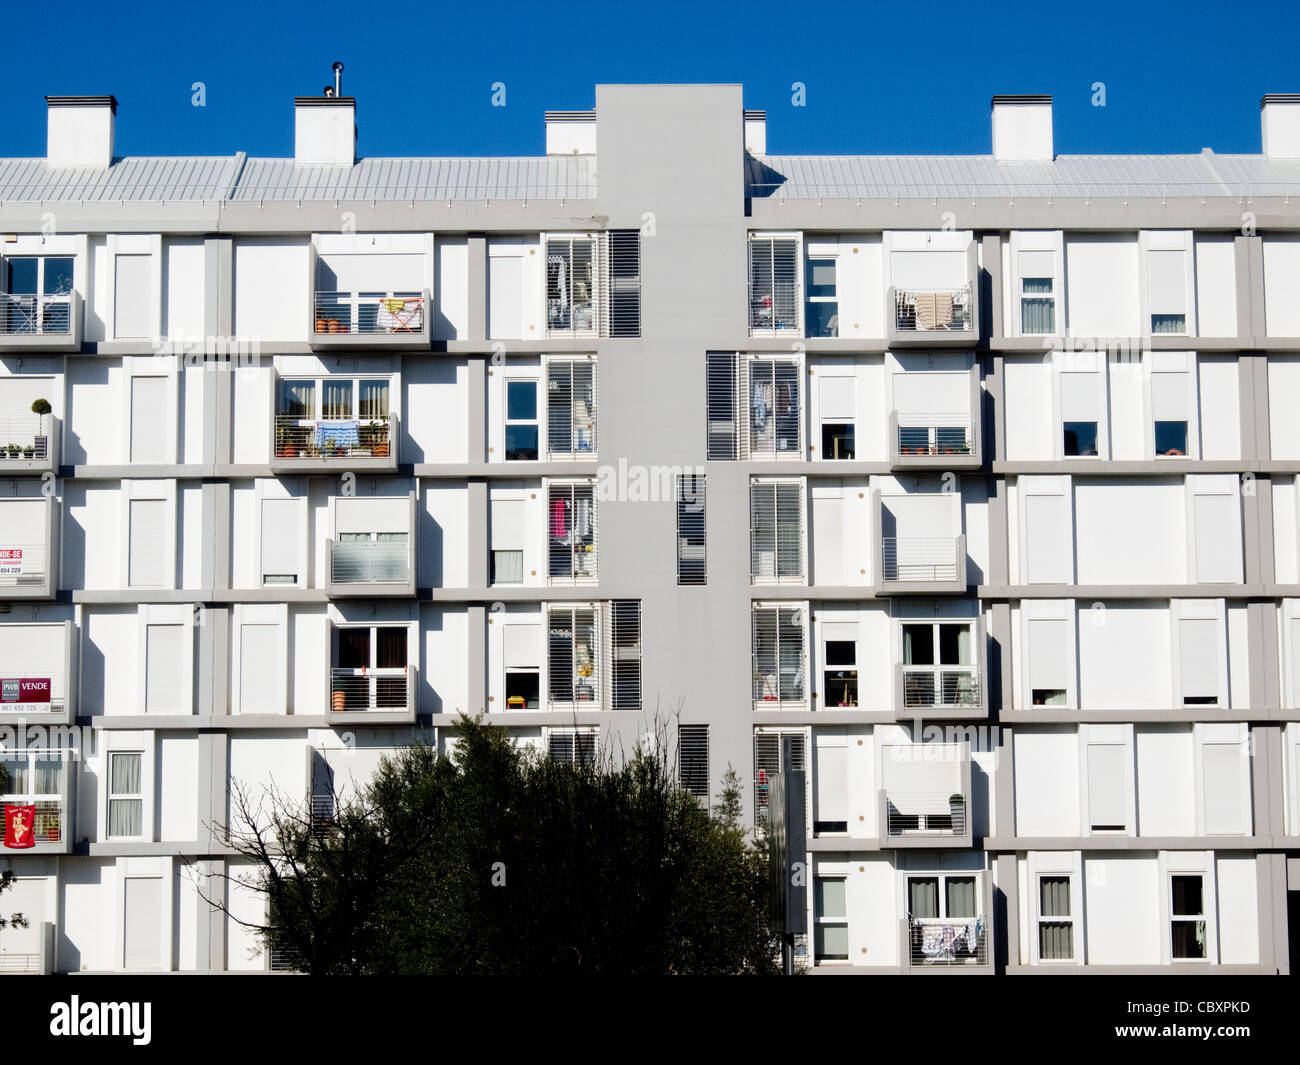 Genial Modern Apartment Building Facade